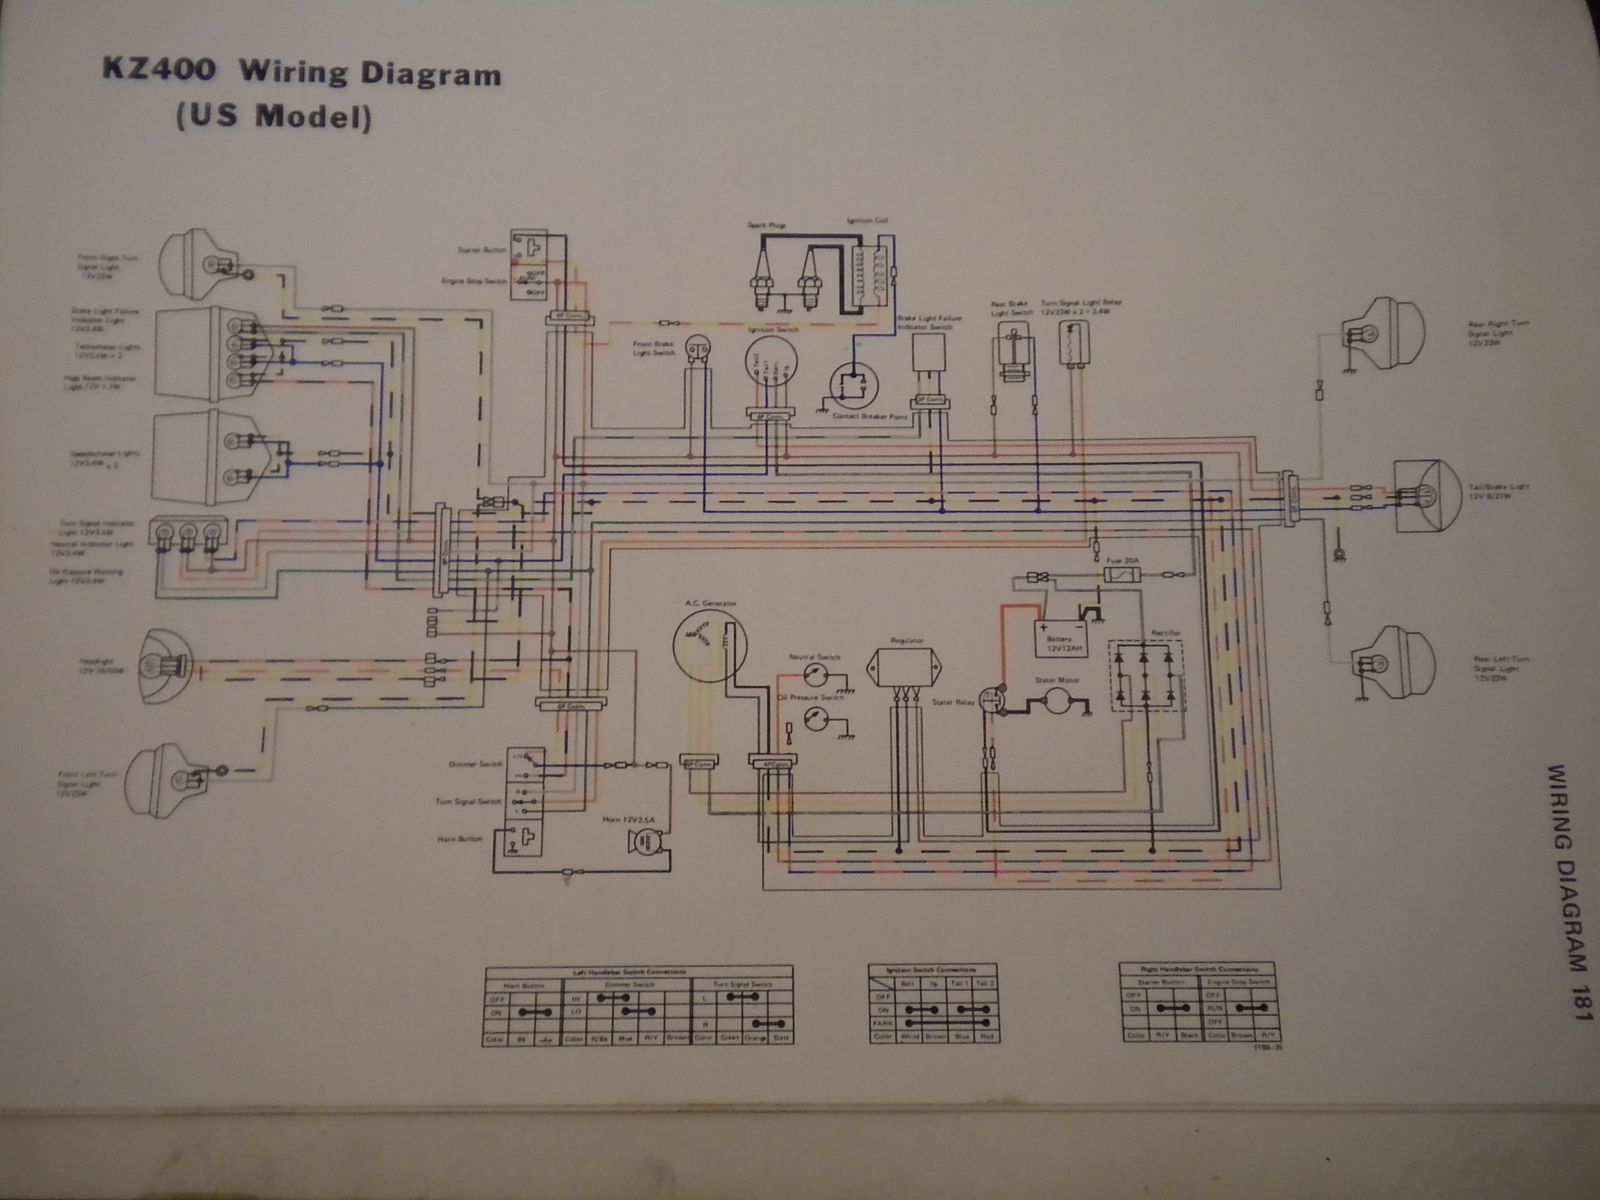 DSCN2435-2 Quincy Wiring Diagrams on camper trailer, ignition switch, 4 pin relay, boat battery, dc motor, fog light, dump trailer, basic electrical, ford alternator, simple motorcycle, air compressor, limit switch, driving light, wire trailer,